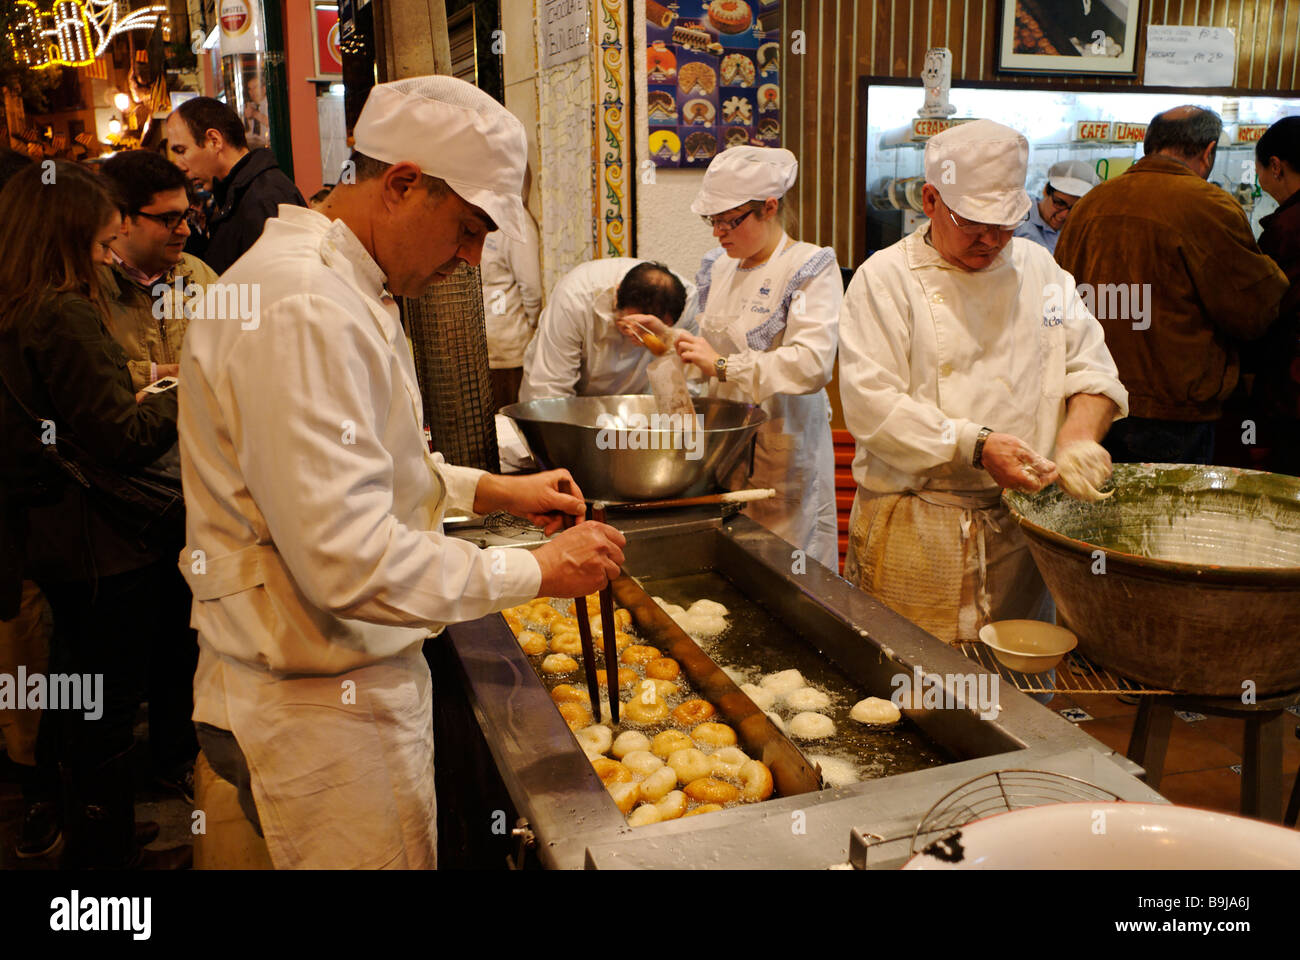 People cooking Spanish donuts Buñuelos traditionally eaten during Las Fallas festival with hot chocolate Valencia - Stock Image